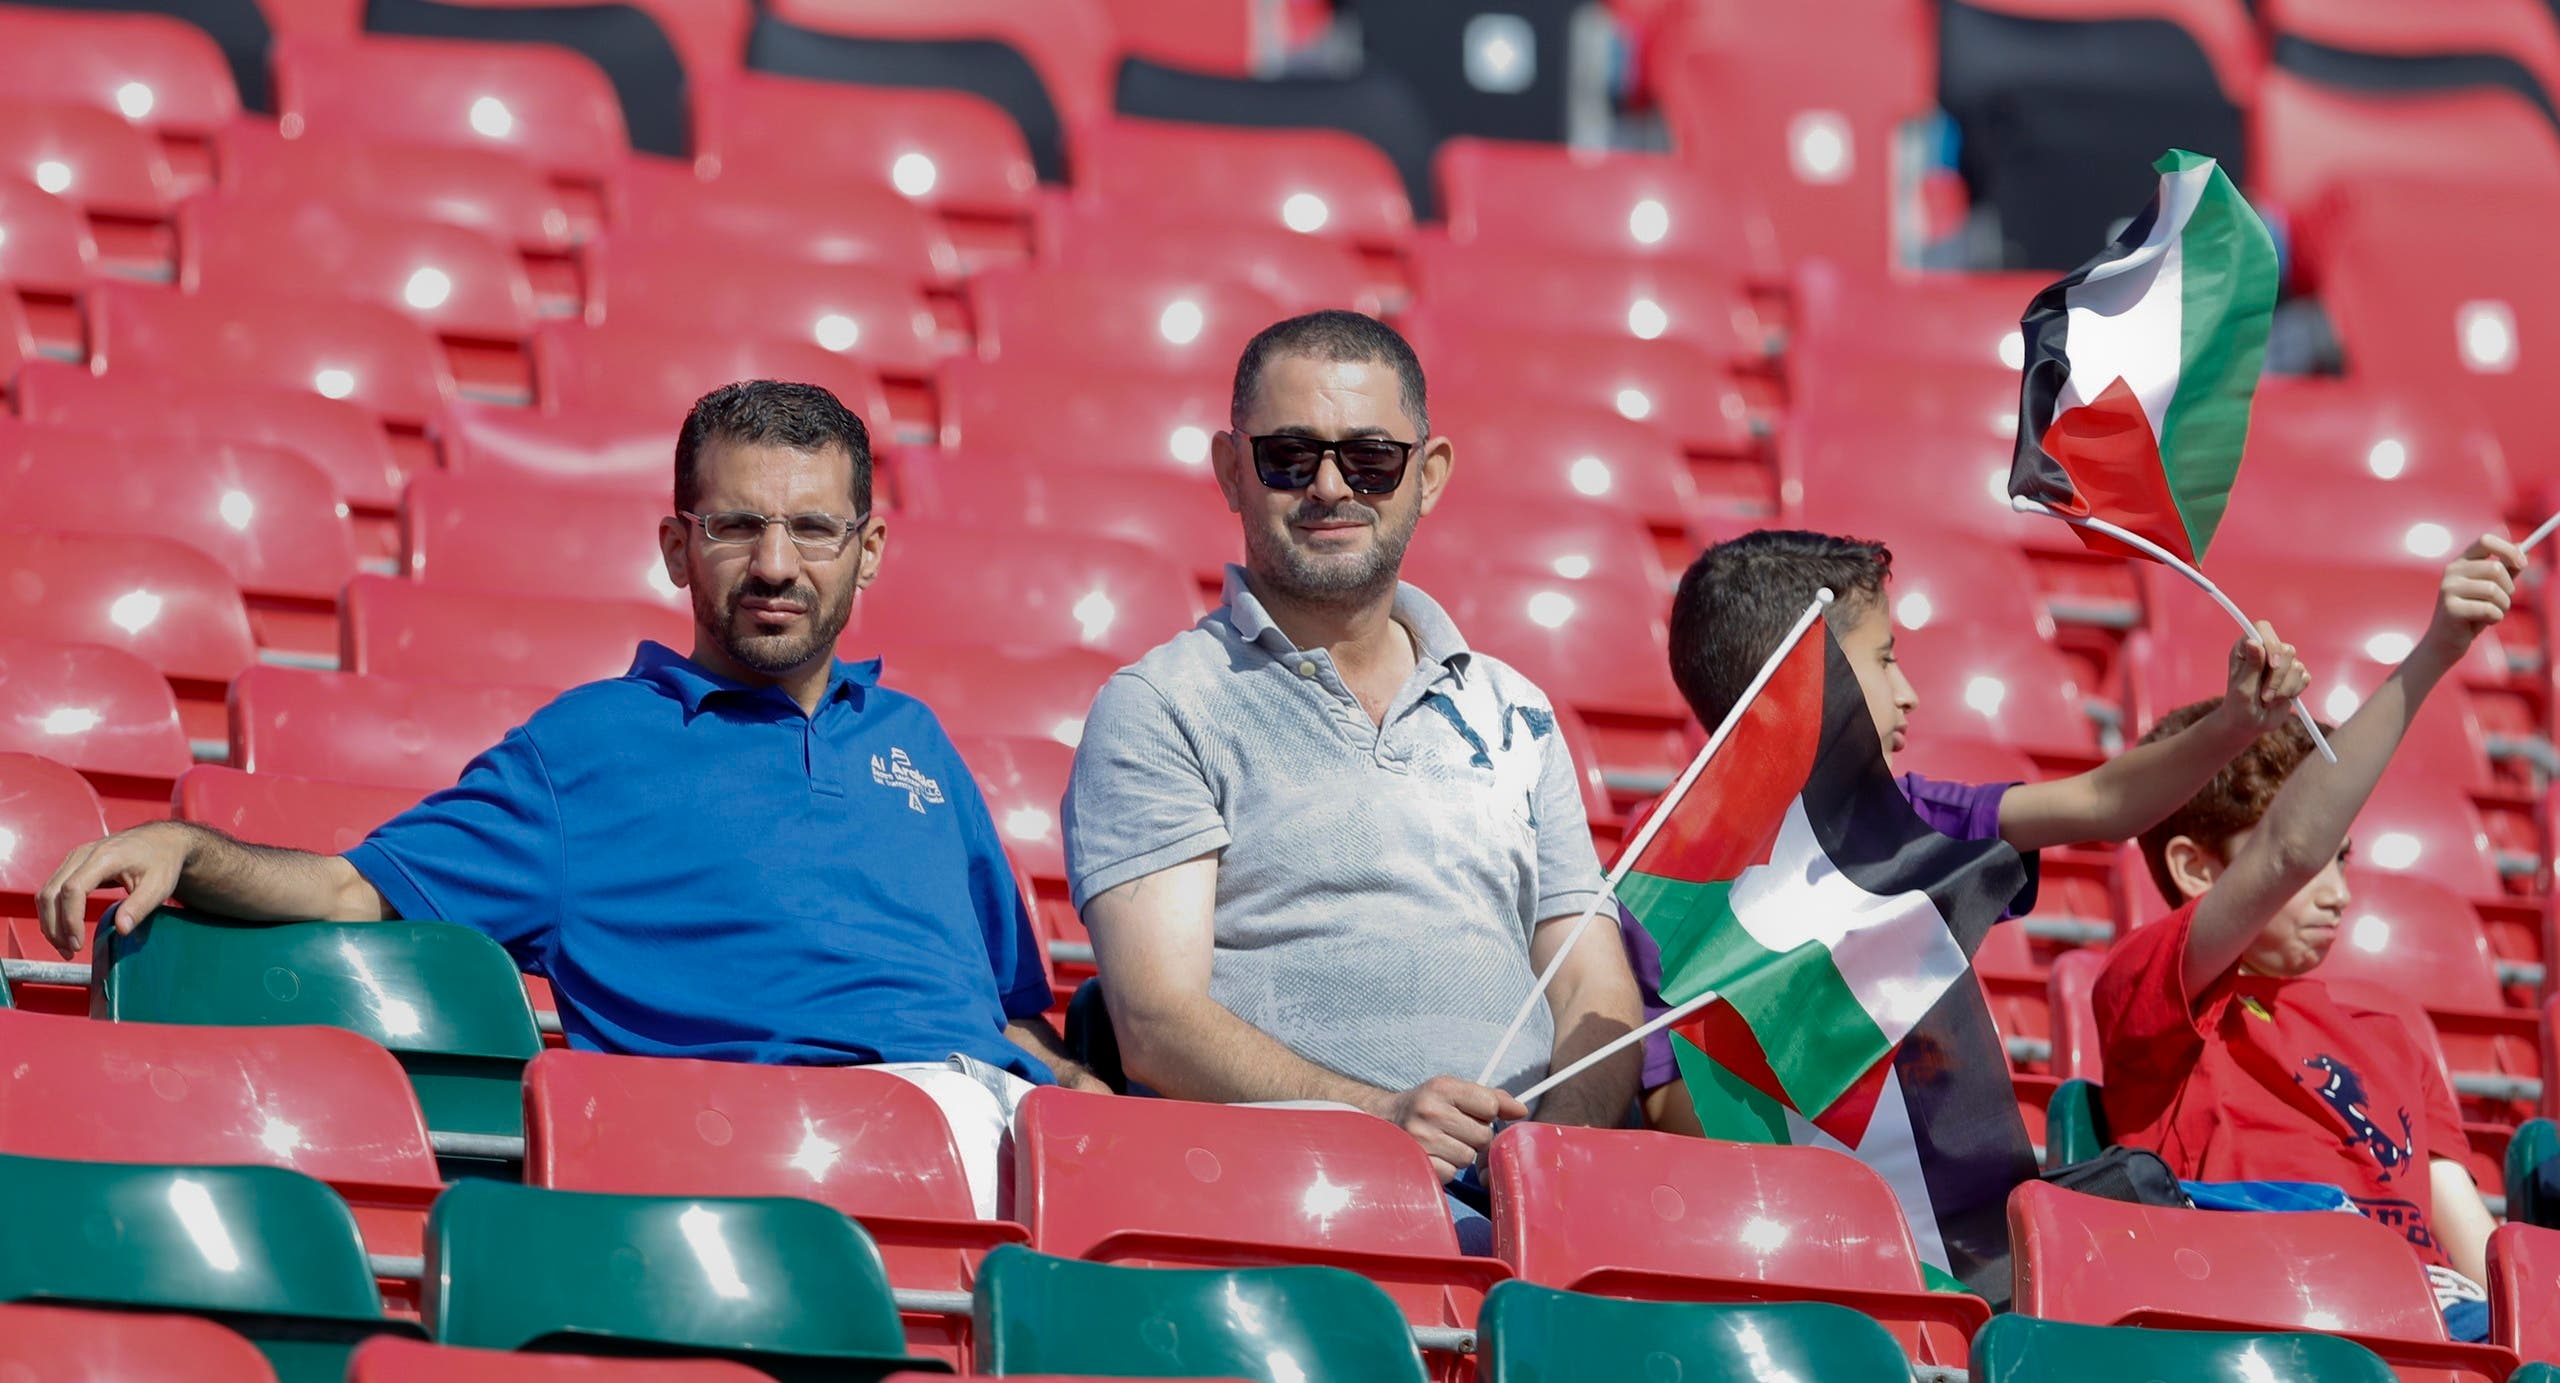 Supporters hold Palestinian flags as they sit in the stands prior to the AFC Asian Cup group B soccer match between Australia and Palestine at Al Maktoum Stadium in Dubai, United Arab Emirates on Jan. 11, 2019. (AP)